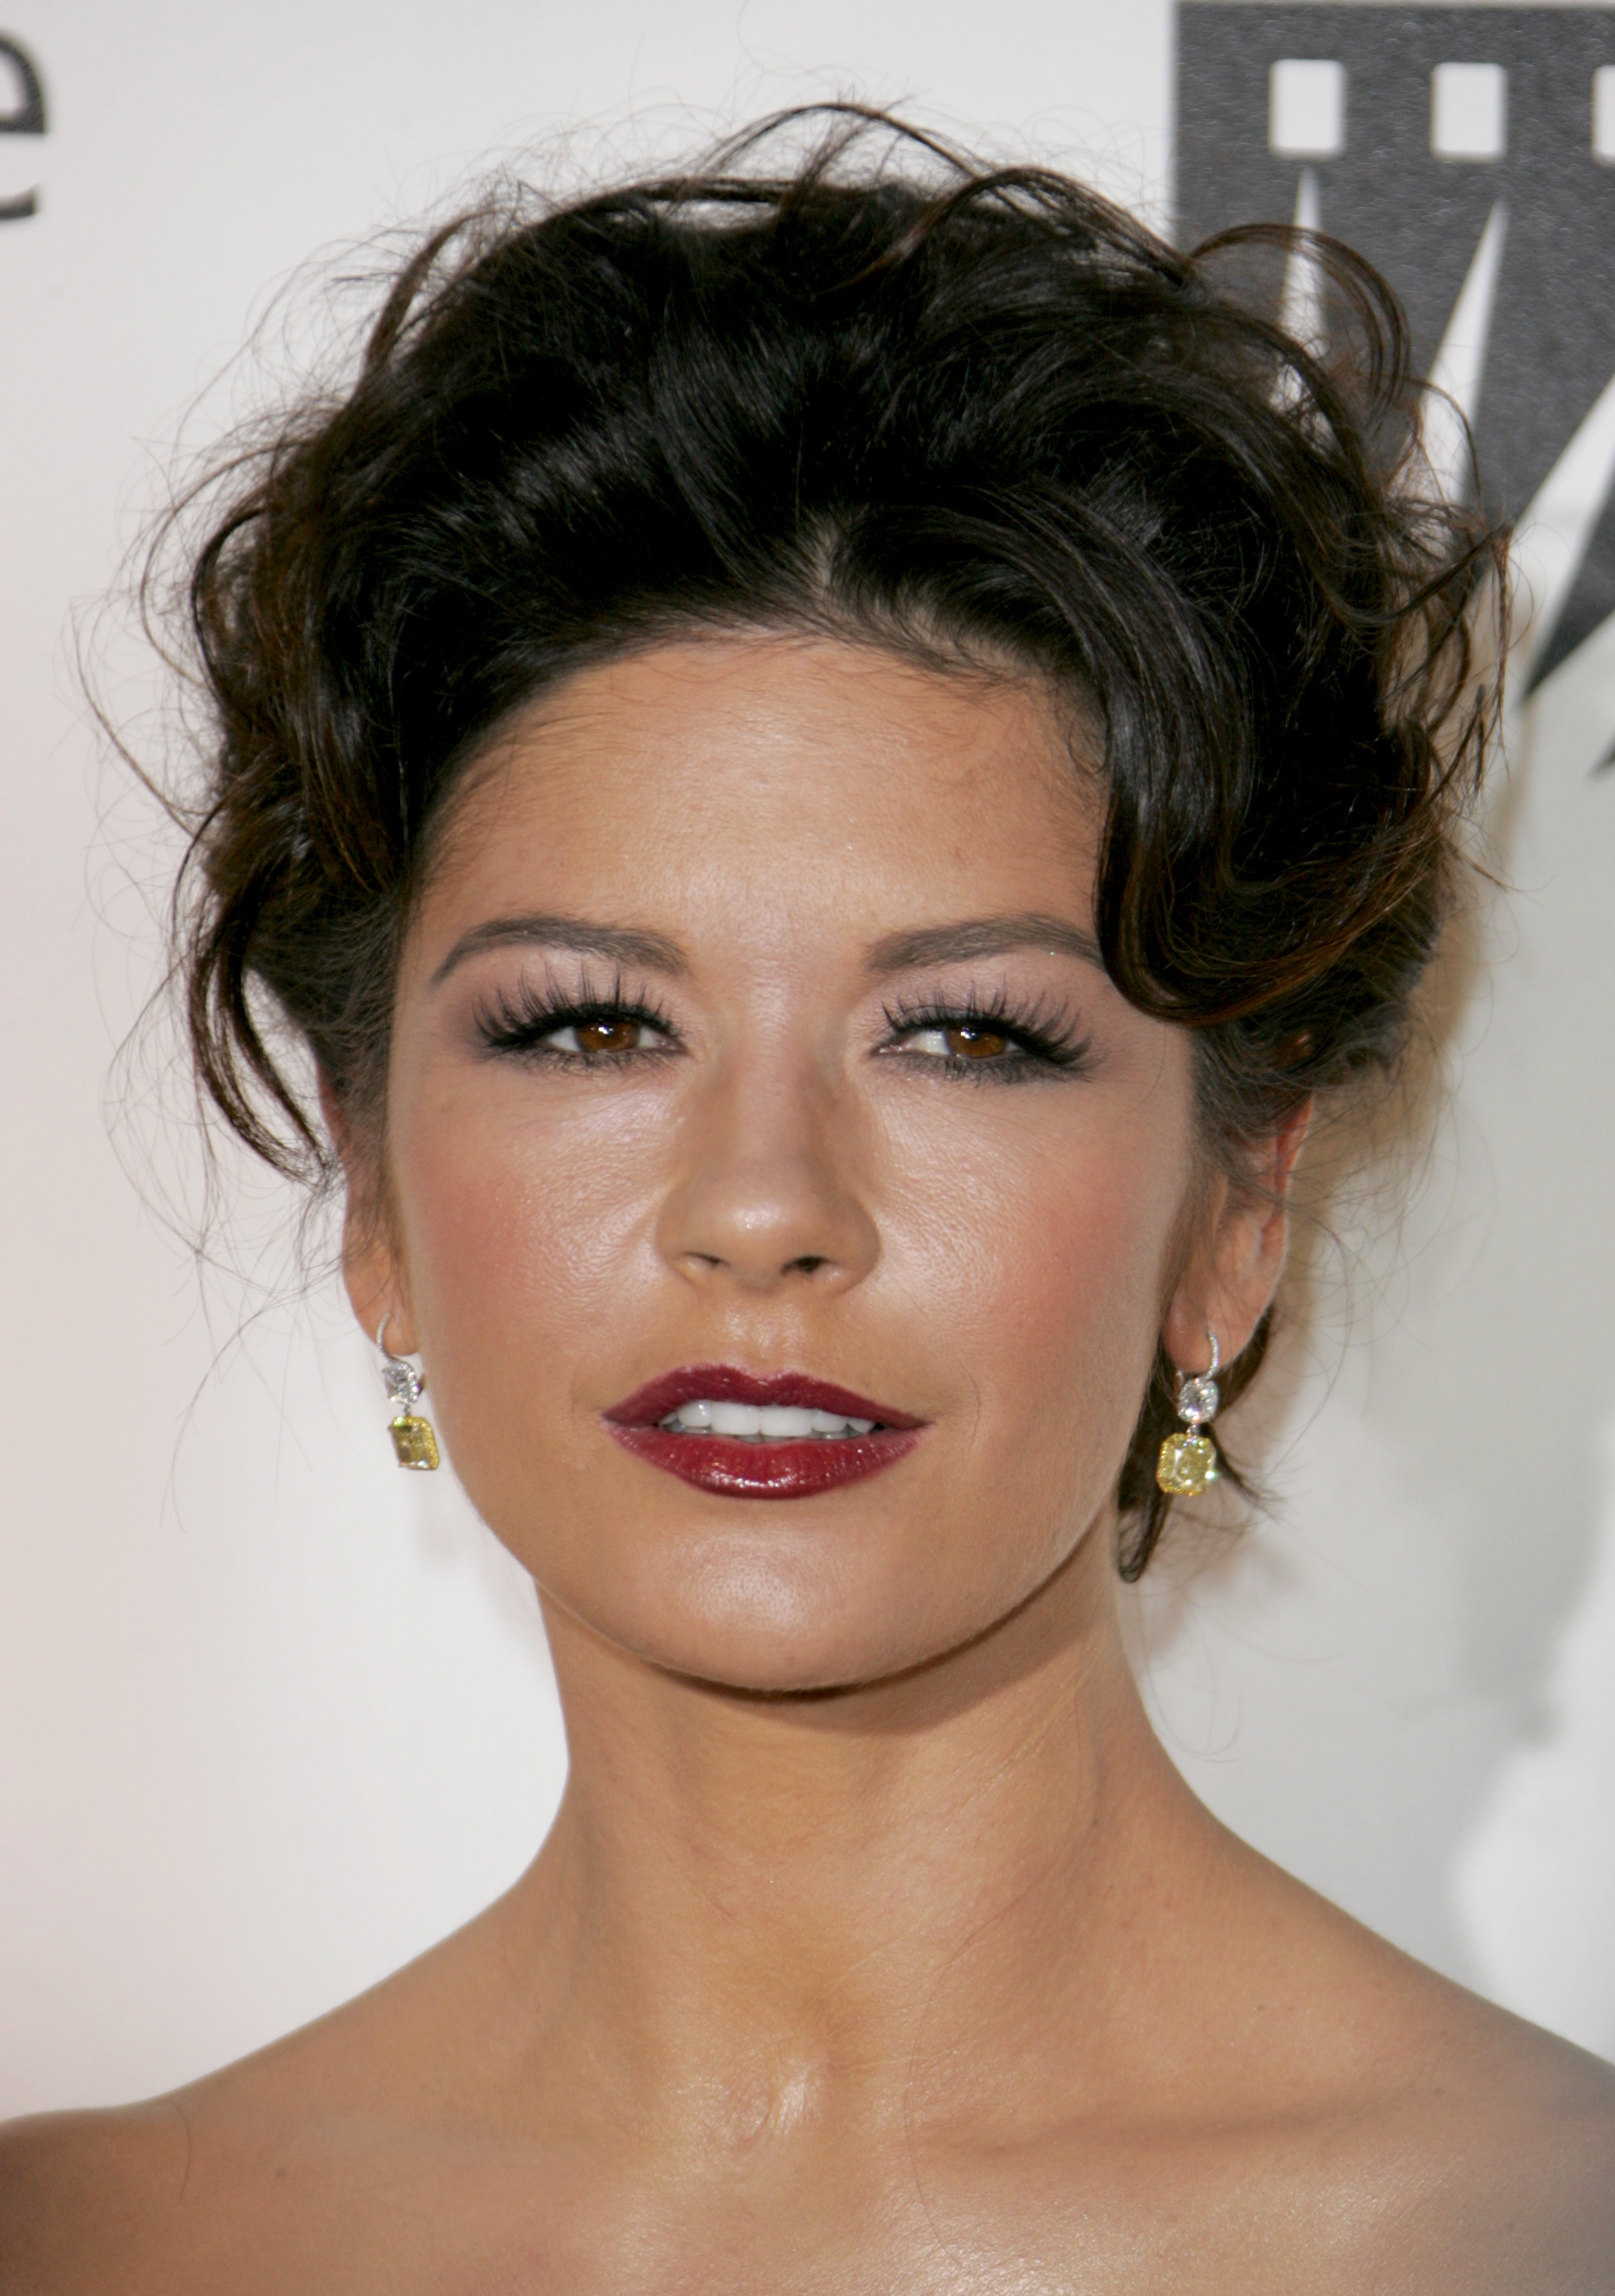 Catherine Zeta-Jones news - NewsLocker Catherine Zeta Jones